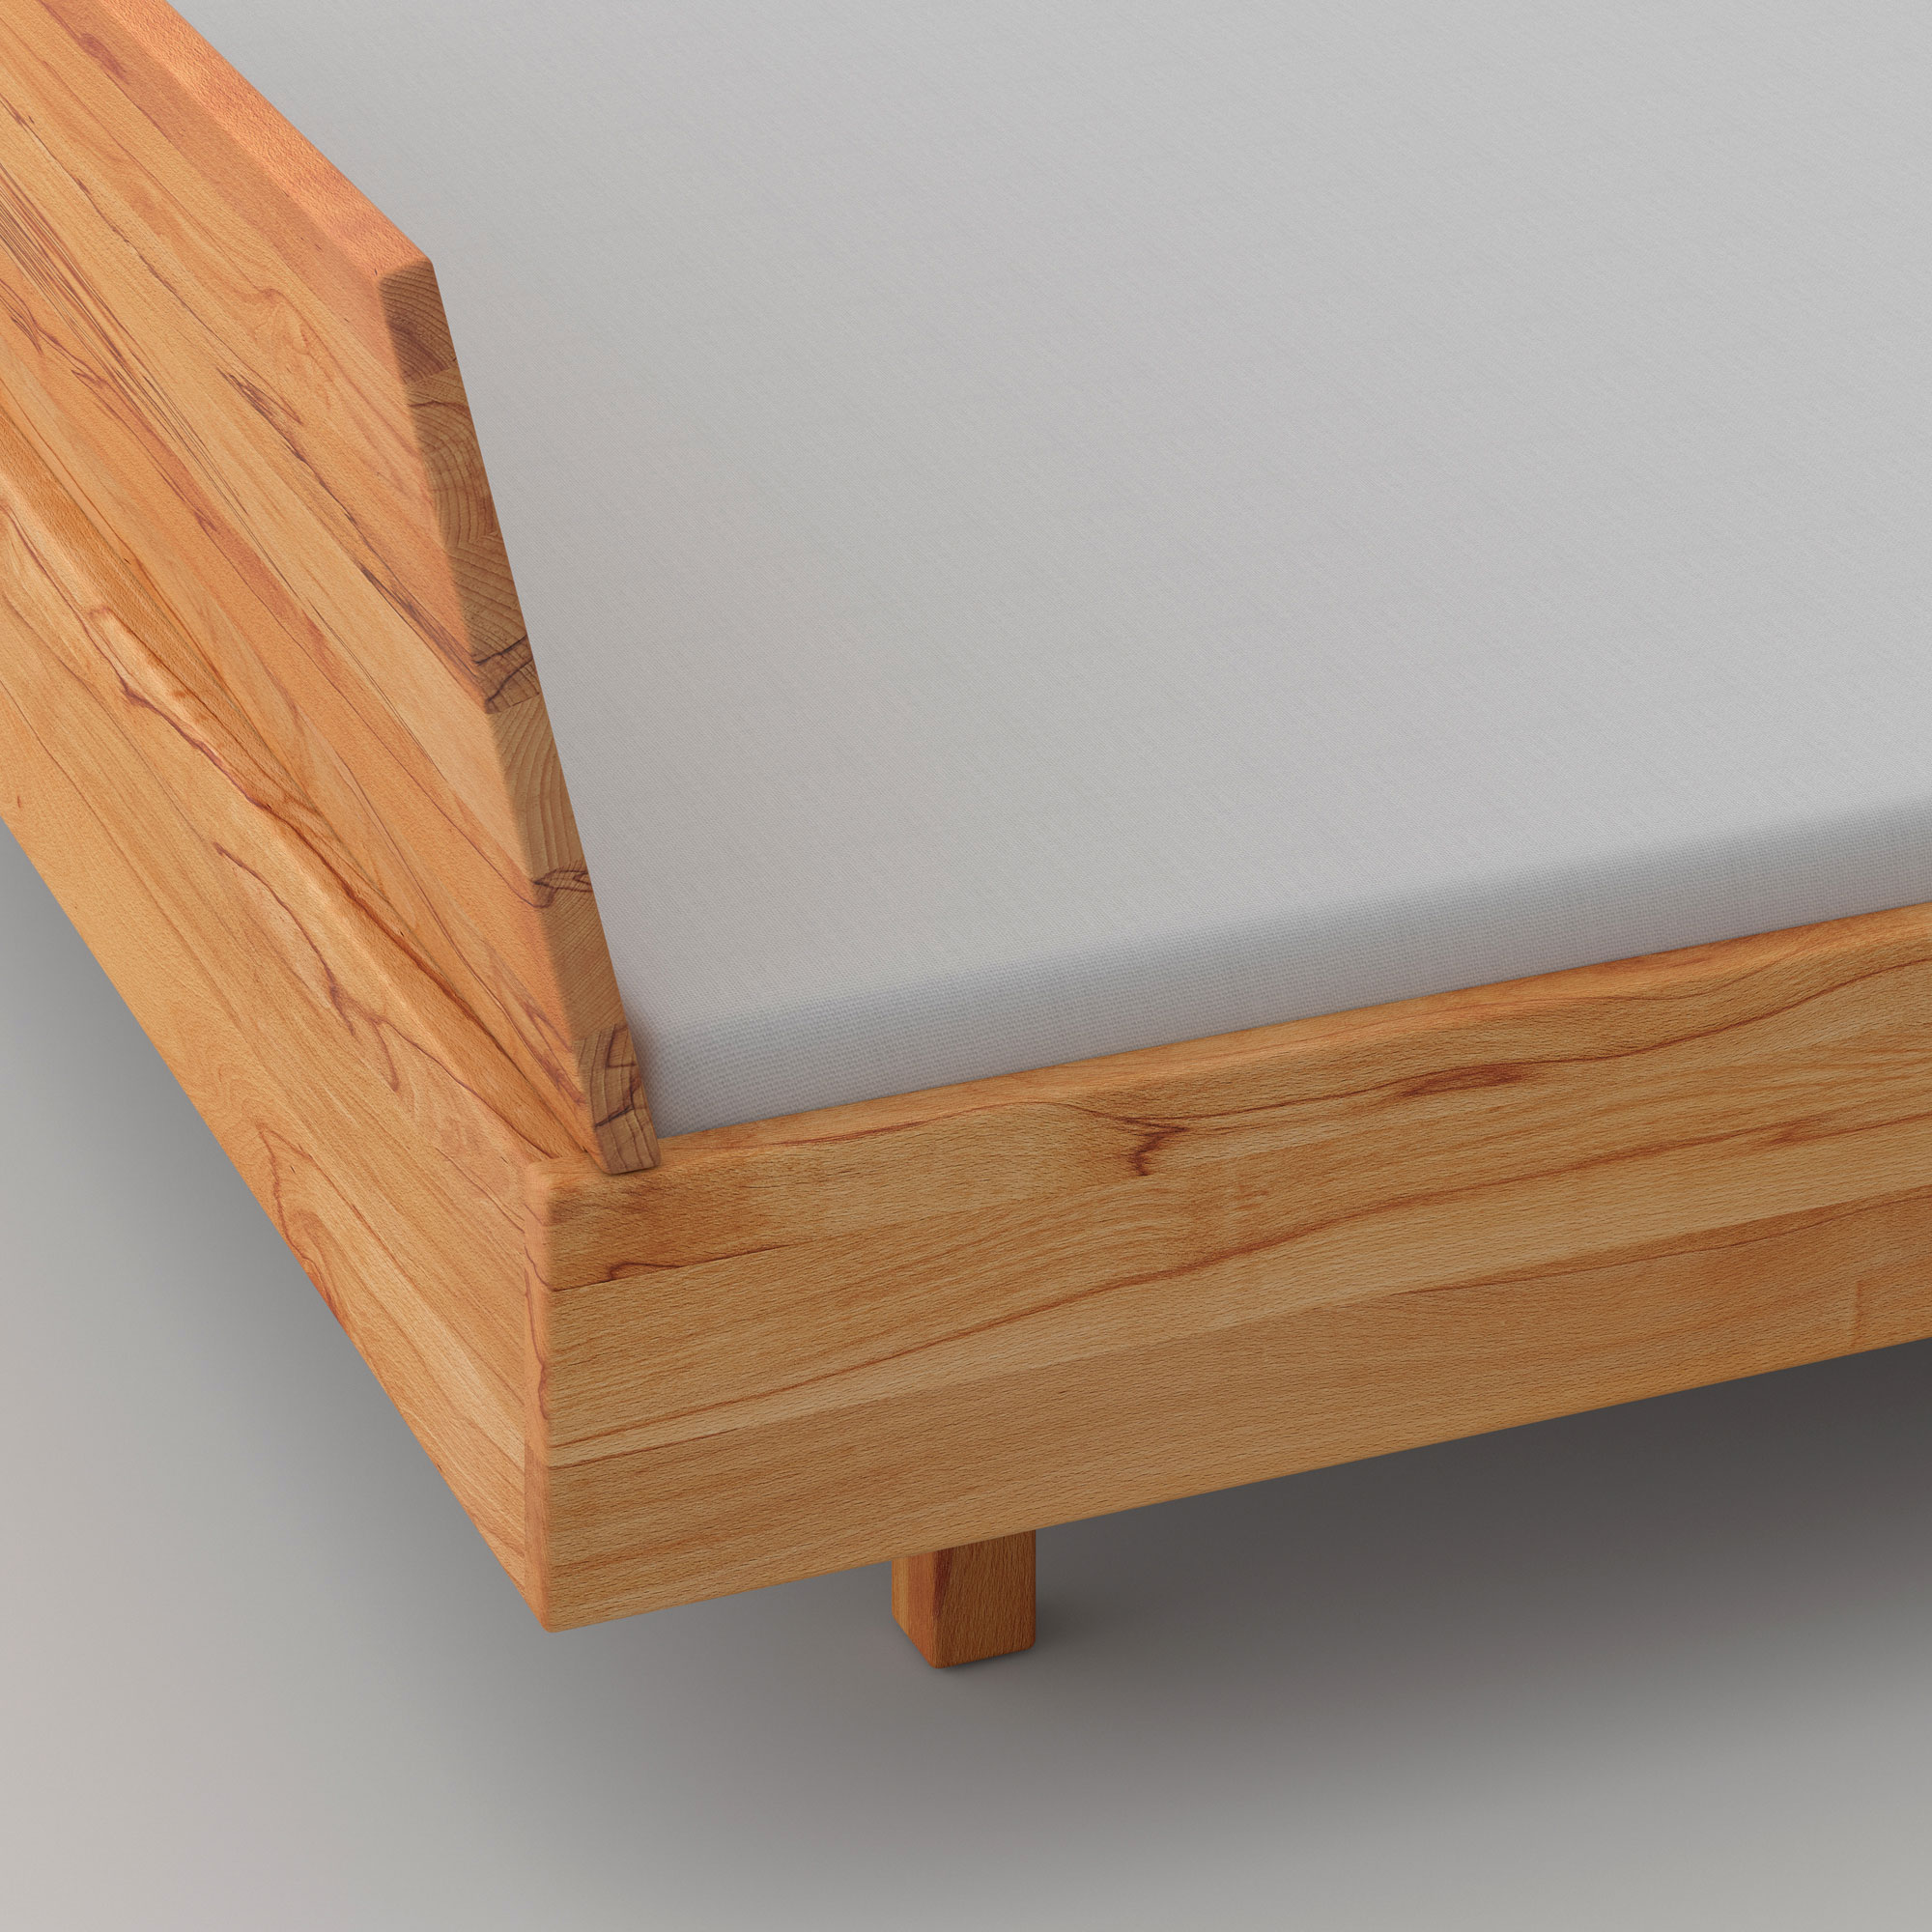 Solid Wooden Bed QUADRA SOFT cam4 custom made in solid wood by vitamin design